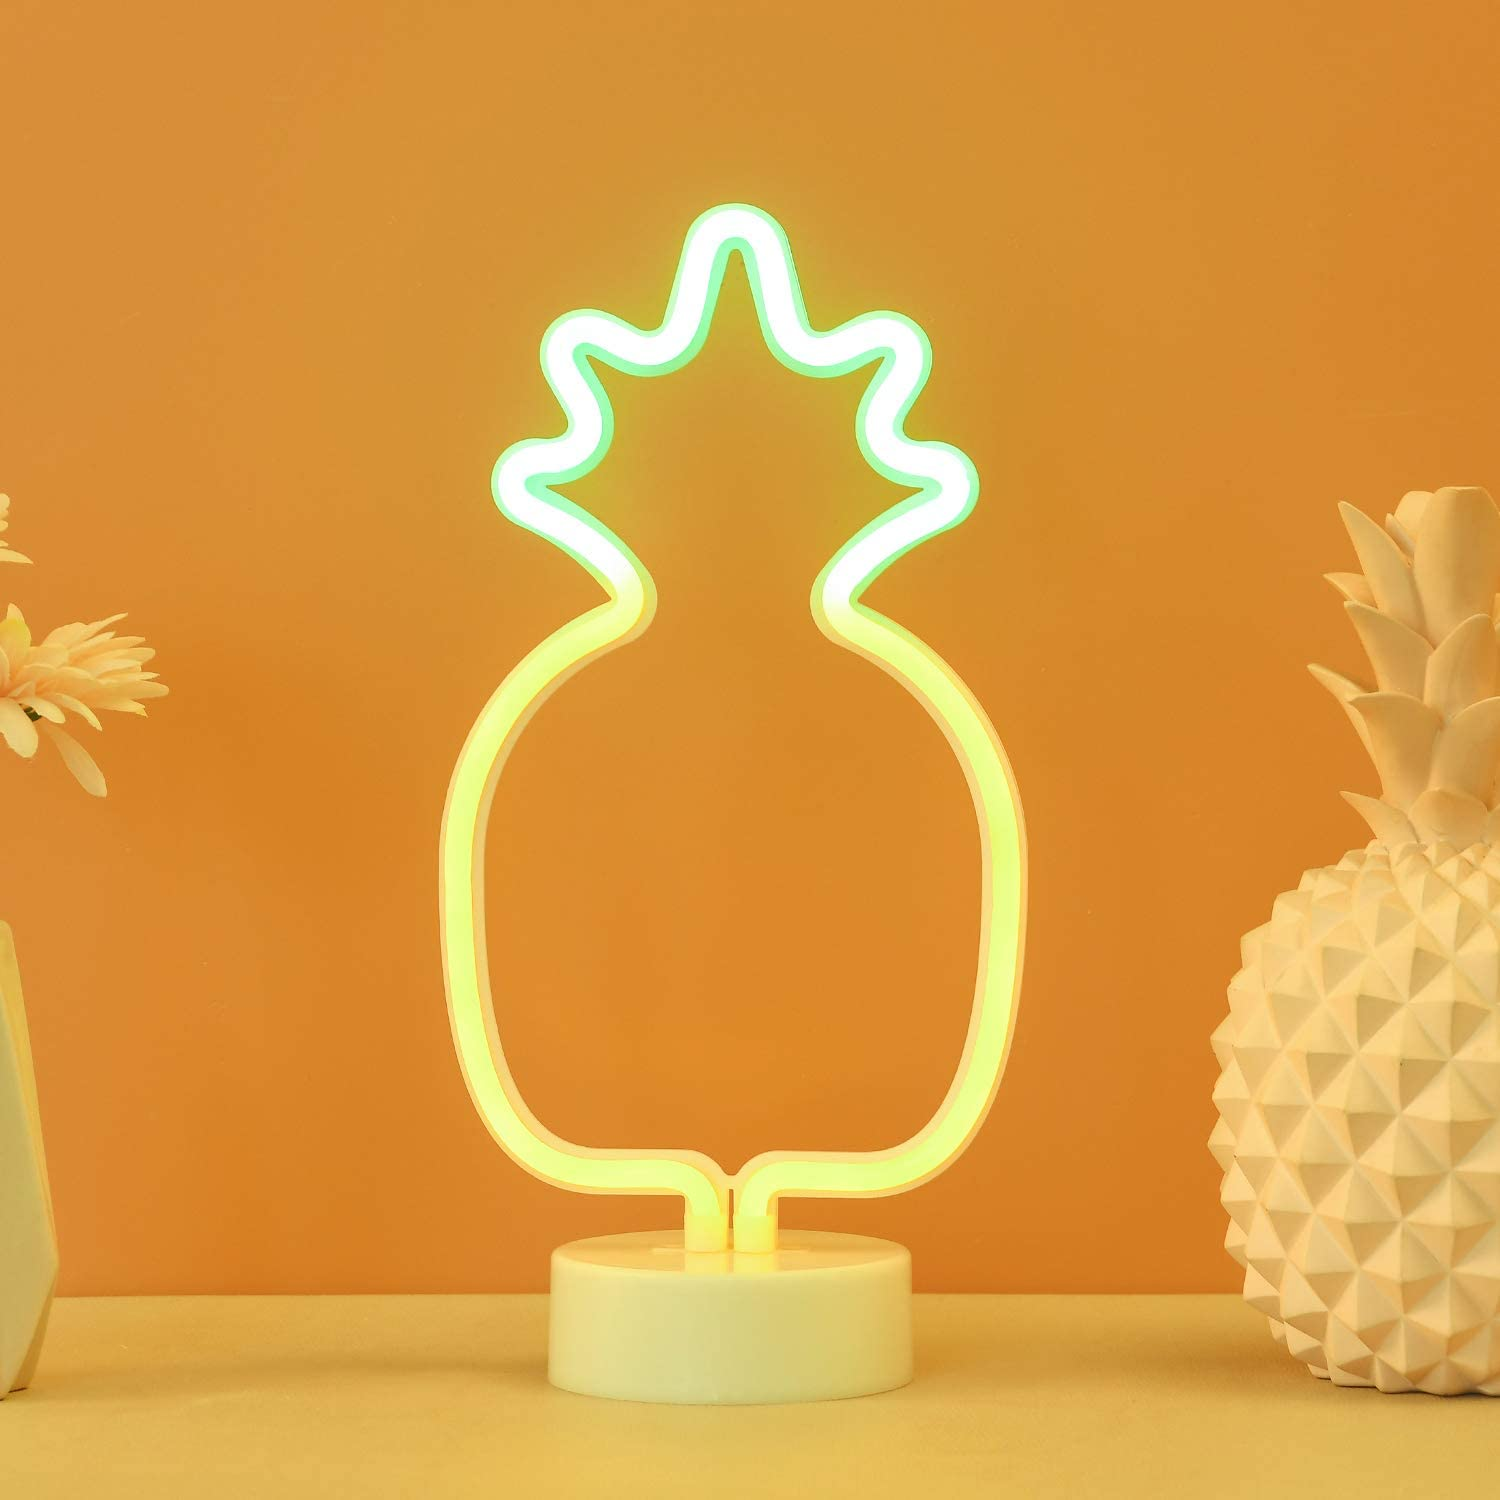 Pineapple Neon Light Sign - LED Pineapple Neon Decorative Lights with Stand Base Battery Powered/USB - Deco of Children's Room, Bedroom, Living Room, Party Wedding and Christmas